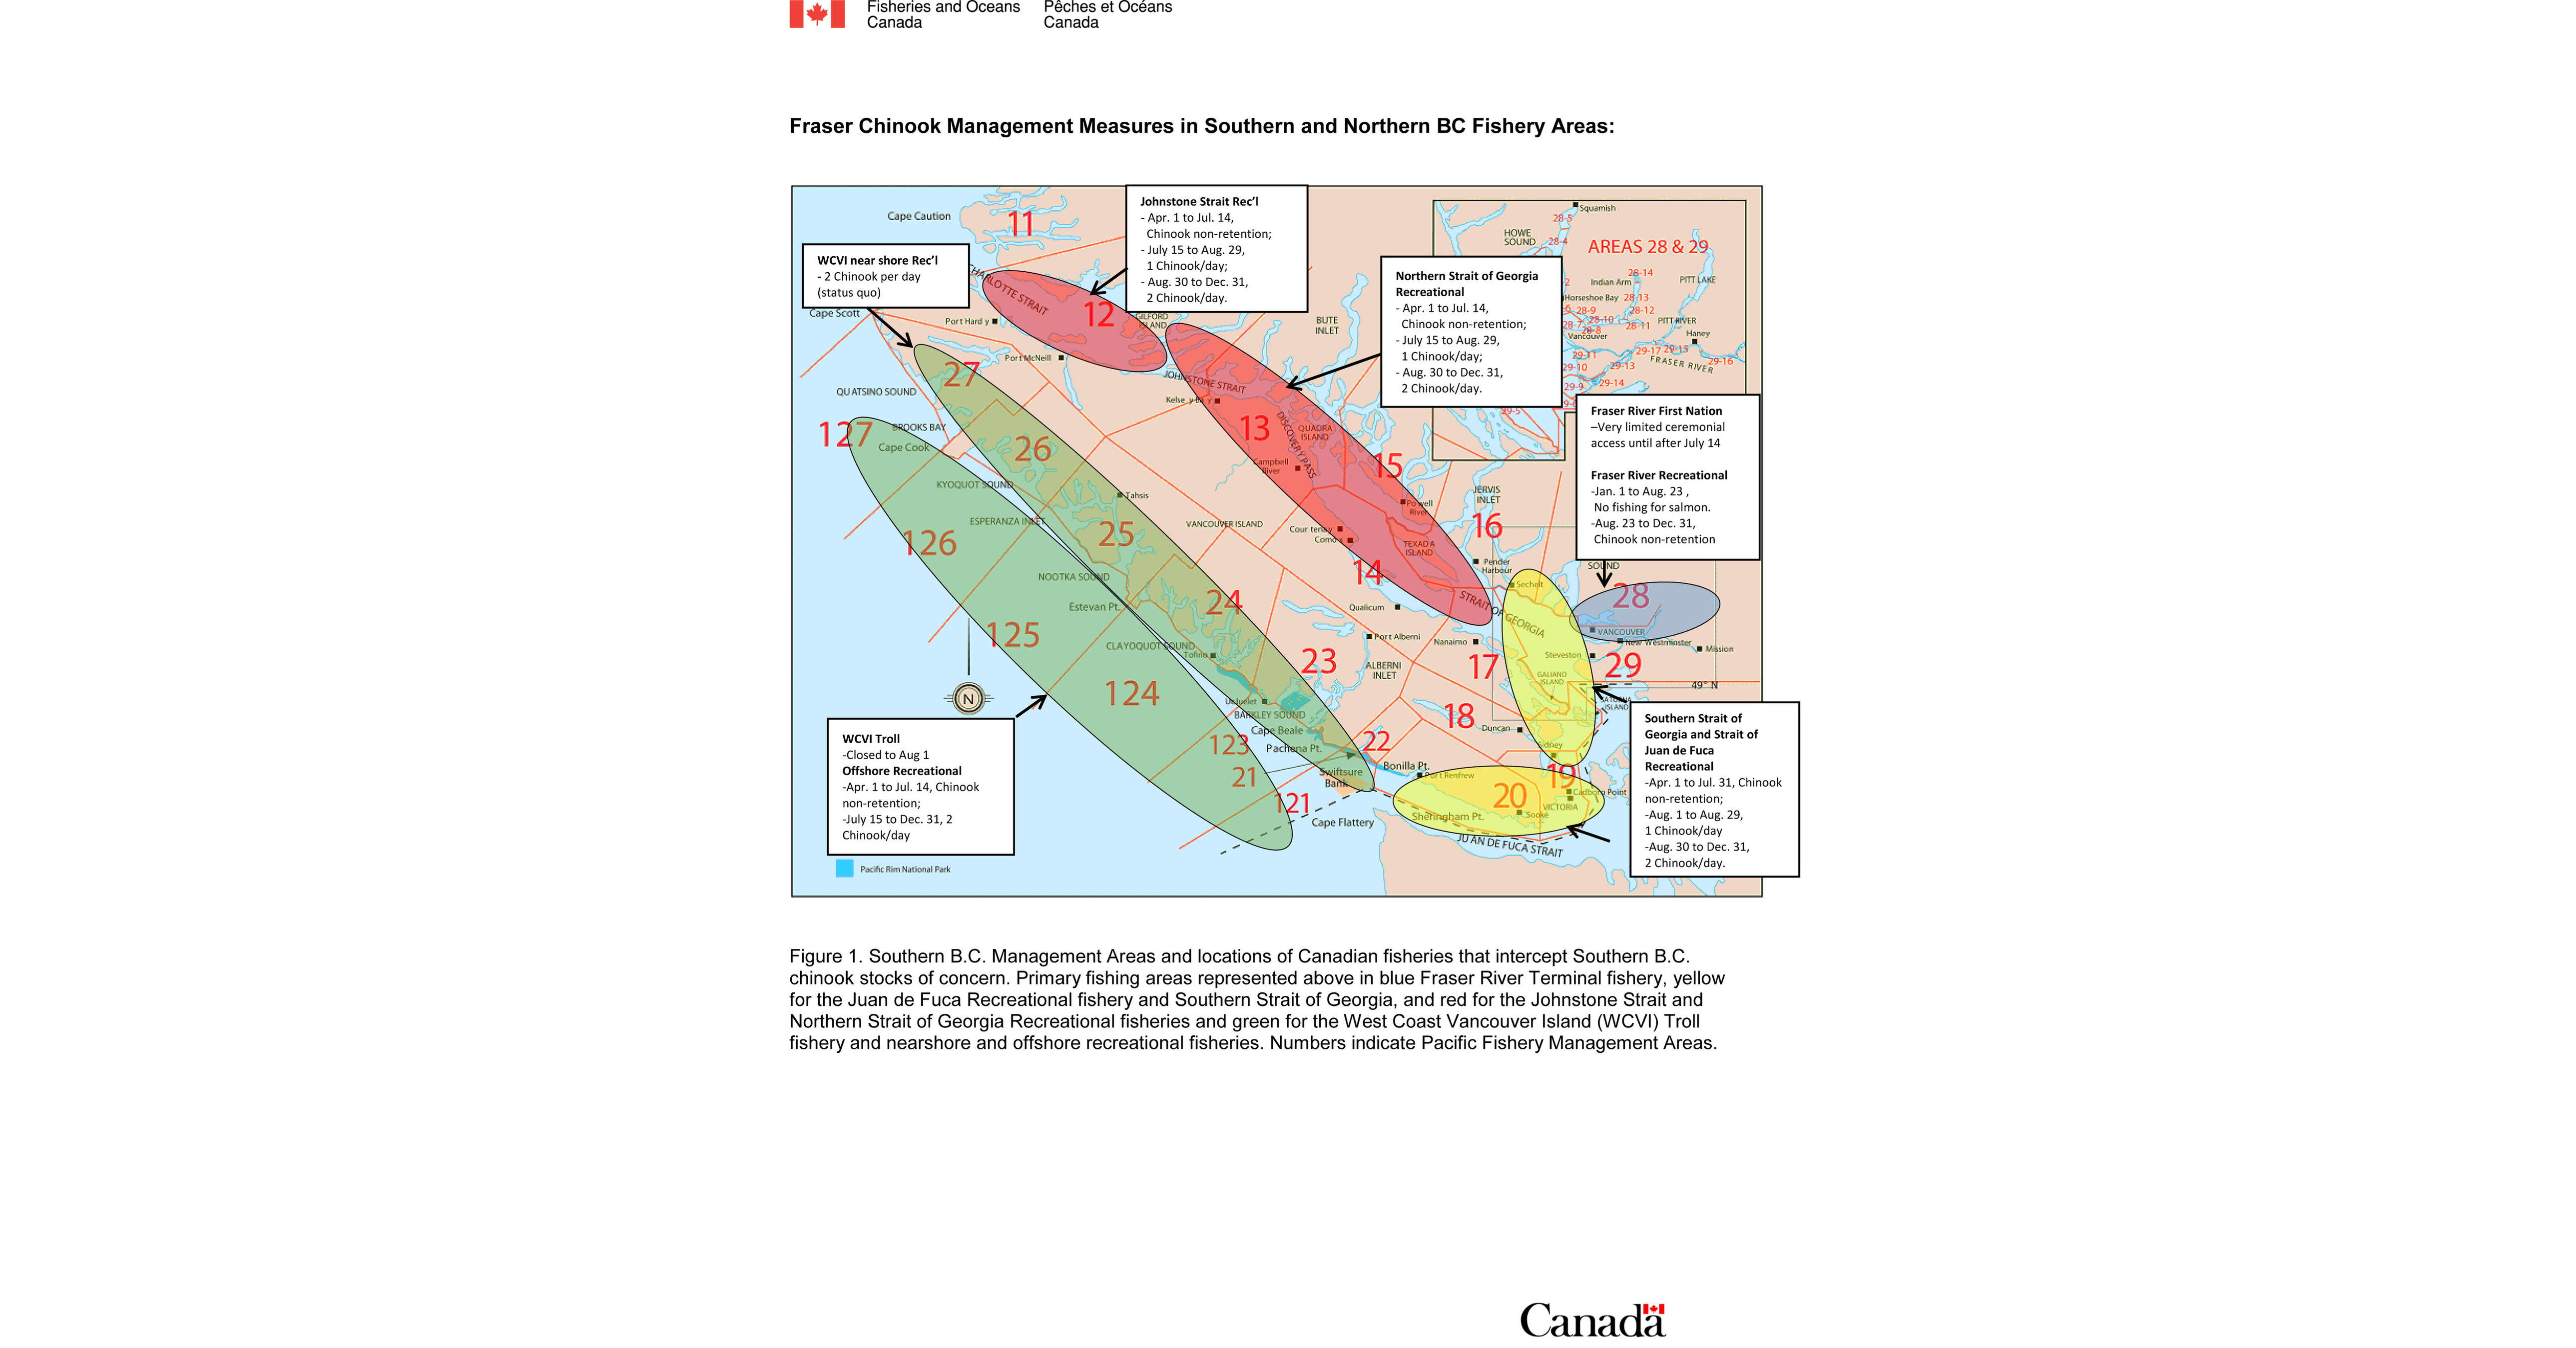 Map Of Canada Government Of Canada.Government Of Canada Takes Action To Address Fraser River Chinook